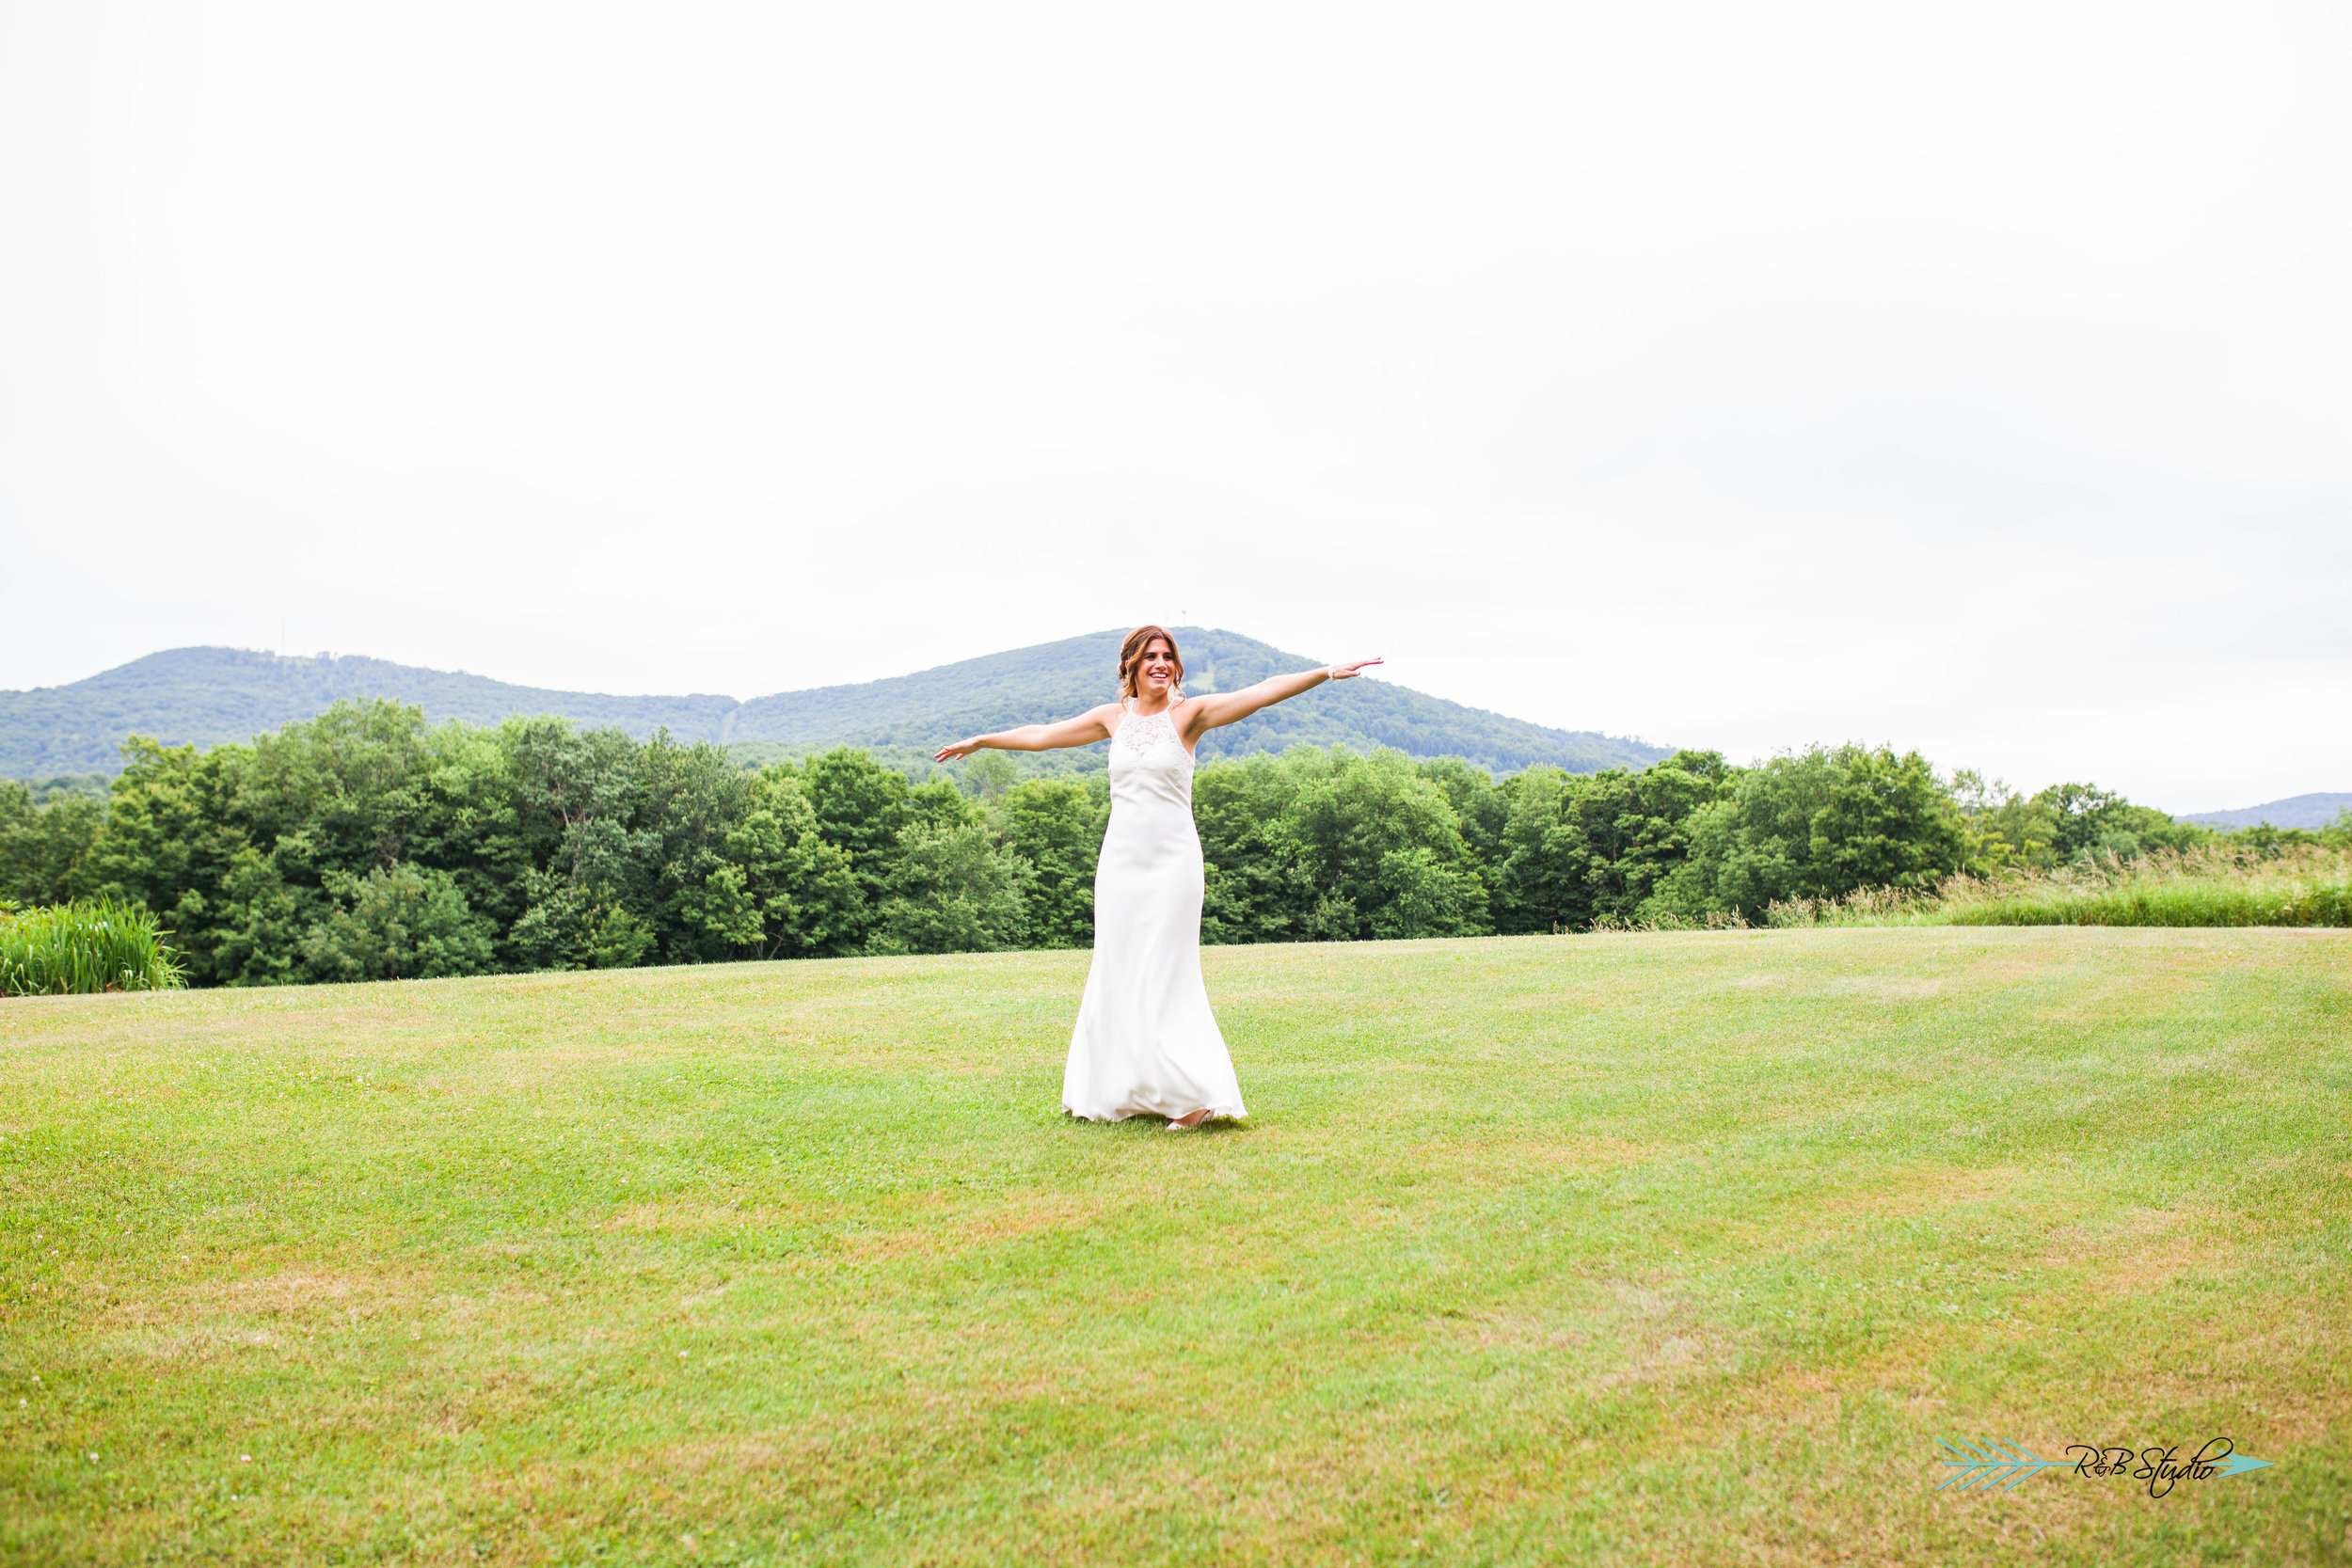 Erin couldn't help but spinning around in front of Elk Mountain like Maria in The Sound of Music!